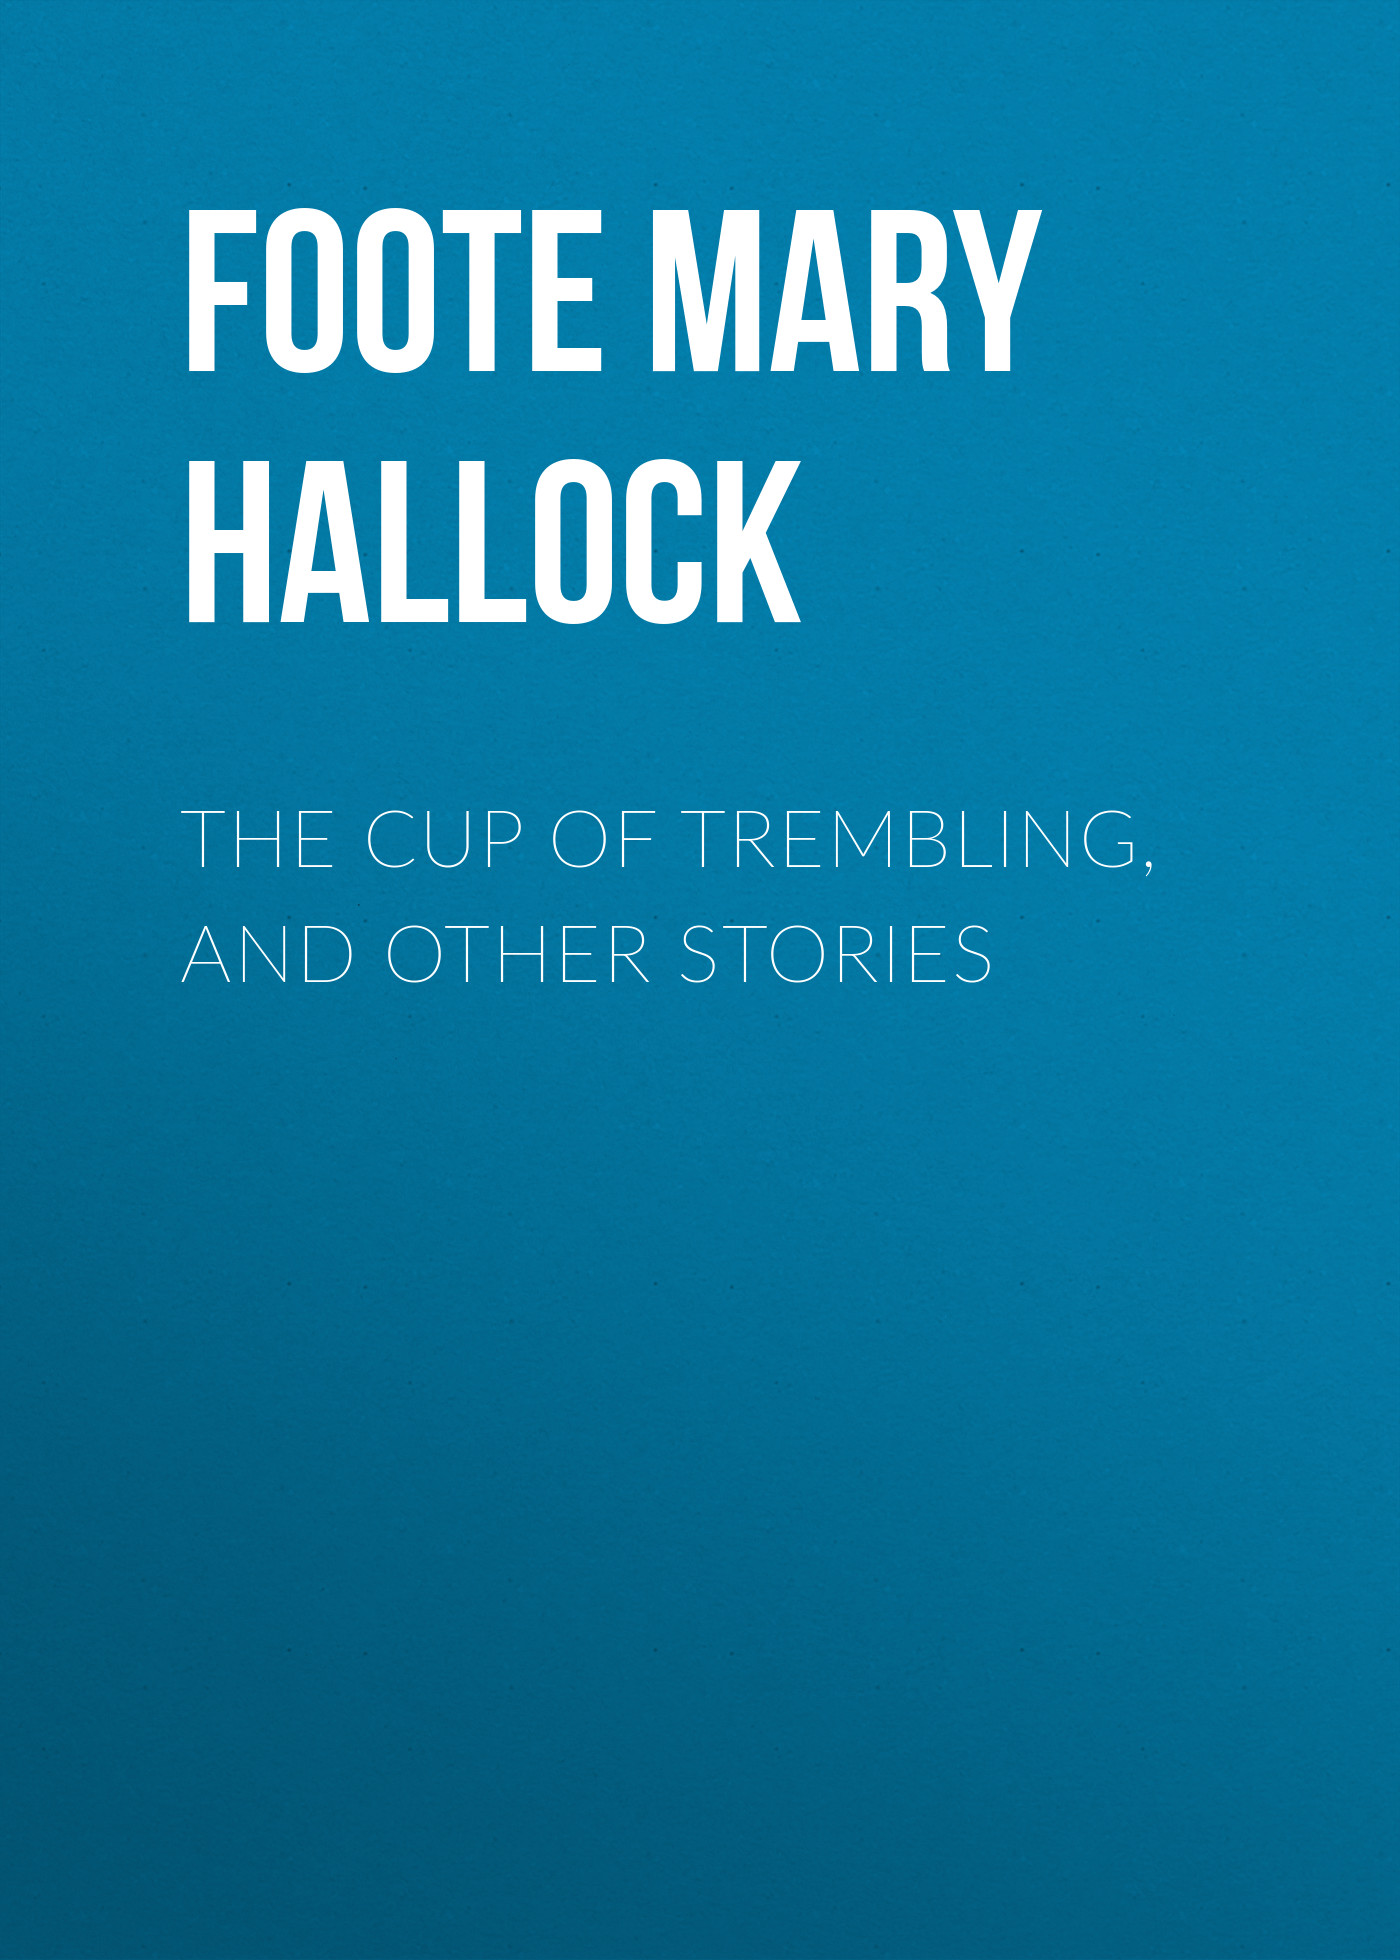 Foote Mary Hallock The Cup of Trembling, and Other Stories foote mary hallock the cup of trembling and other stories